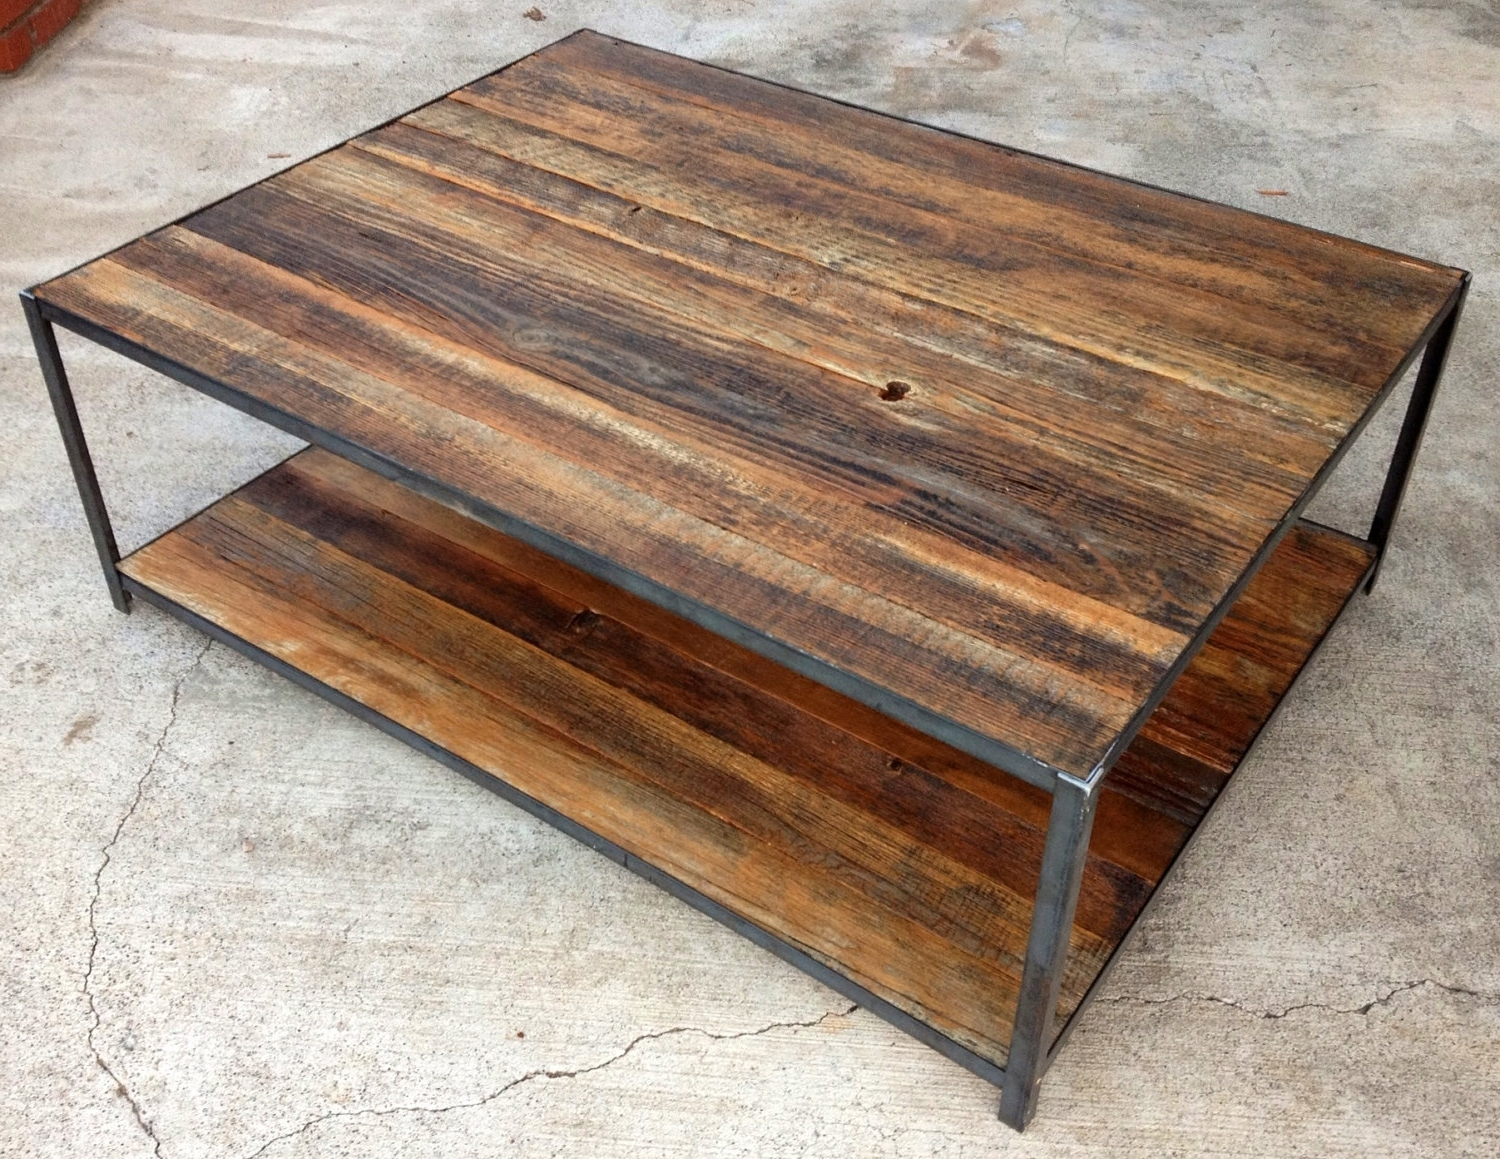 Best Reclaimed Wood Coffee Table Diy 53 On Home Design Pertaining To Fashionable Reclaimed Pine & Iron Coffee Tables (View 2 of 20)